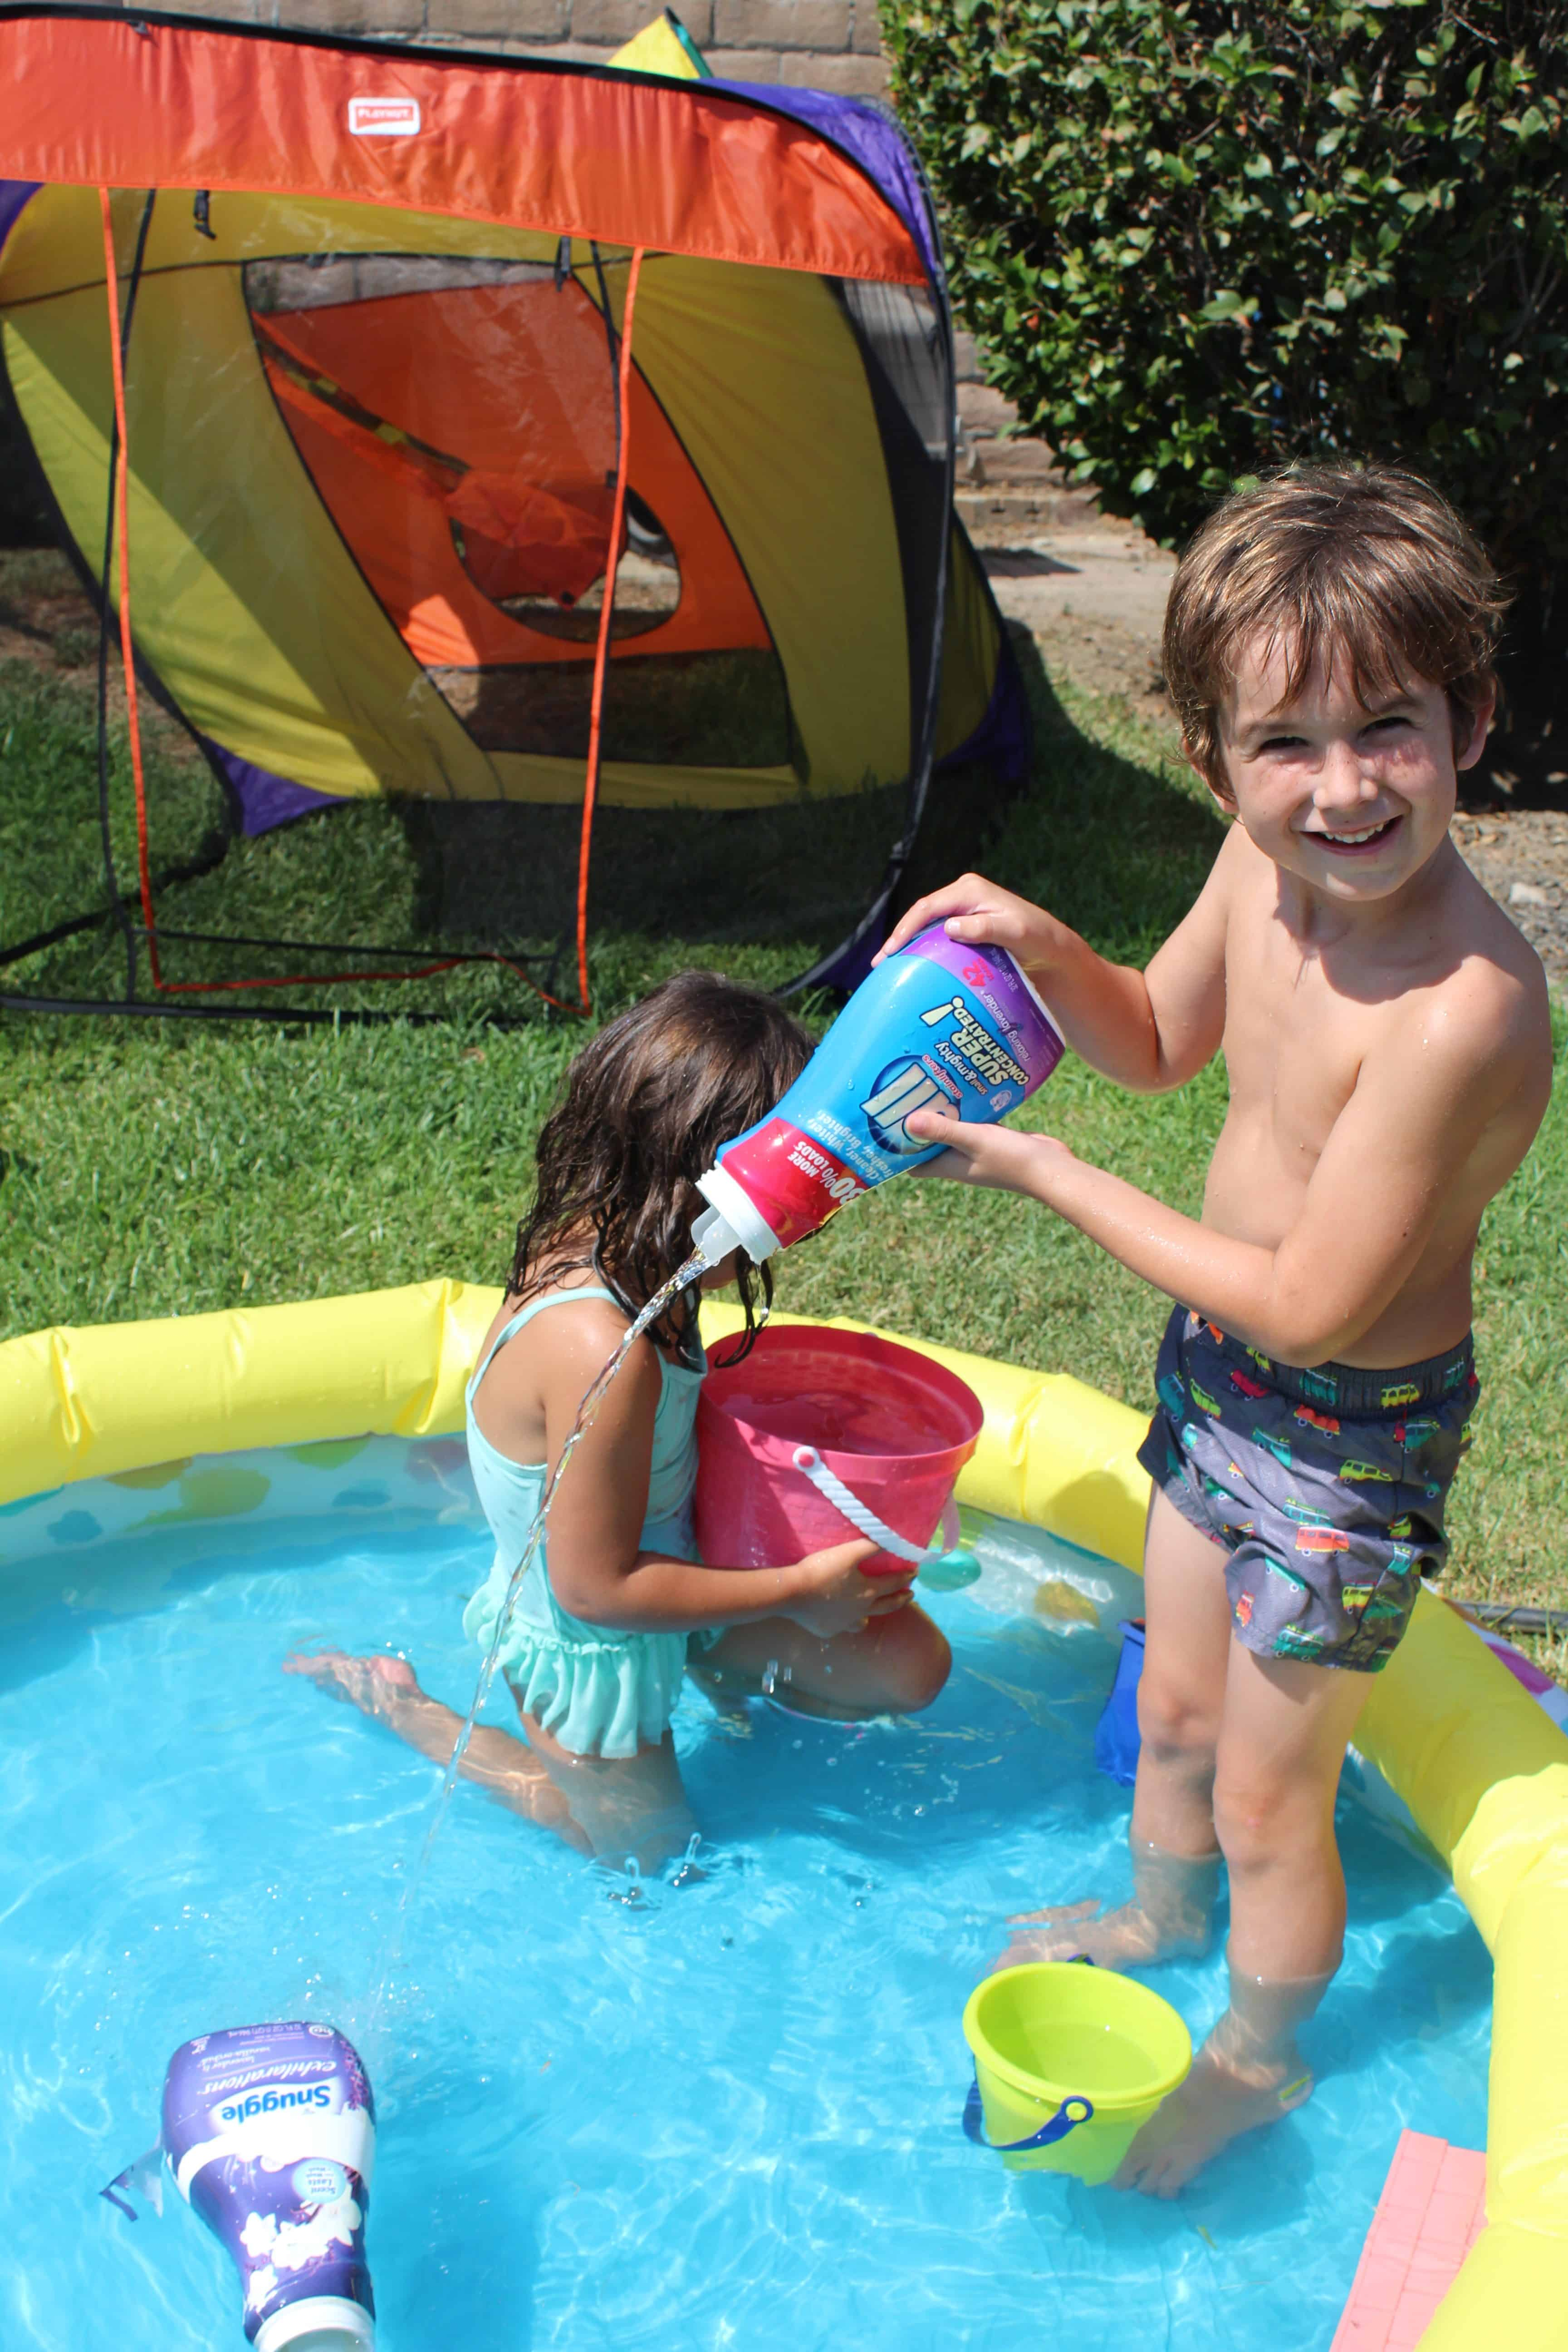 Two young children playing in an inflatable kiddy pool using an old laundry detergent bottle to pour water into the pool.